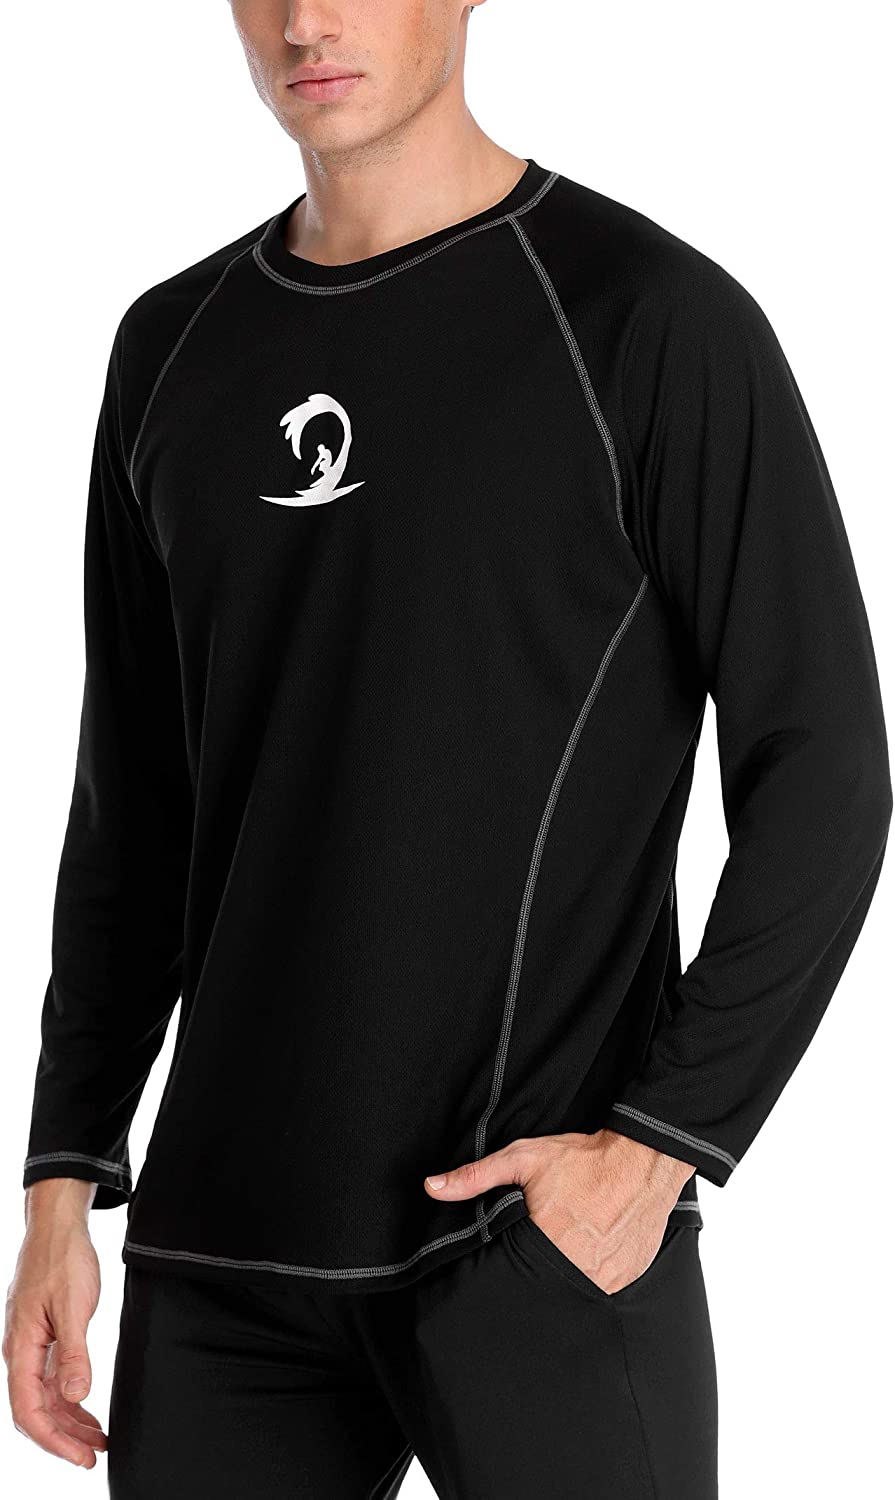 ALove Men Long Sleeve Rash Guard Quick Dry Swim Shirts Sun Protection Athletic Top